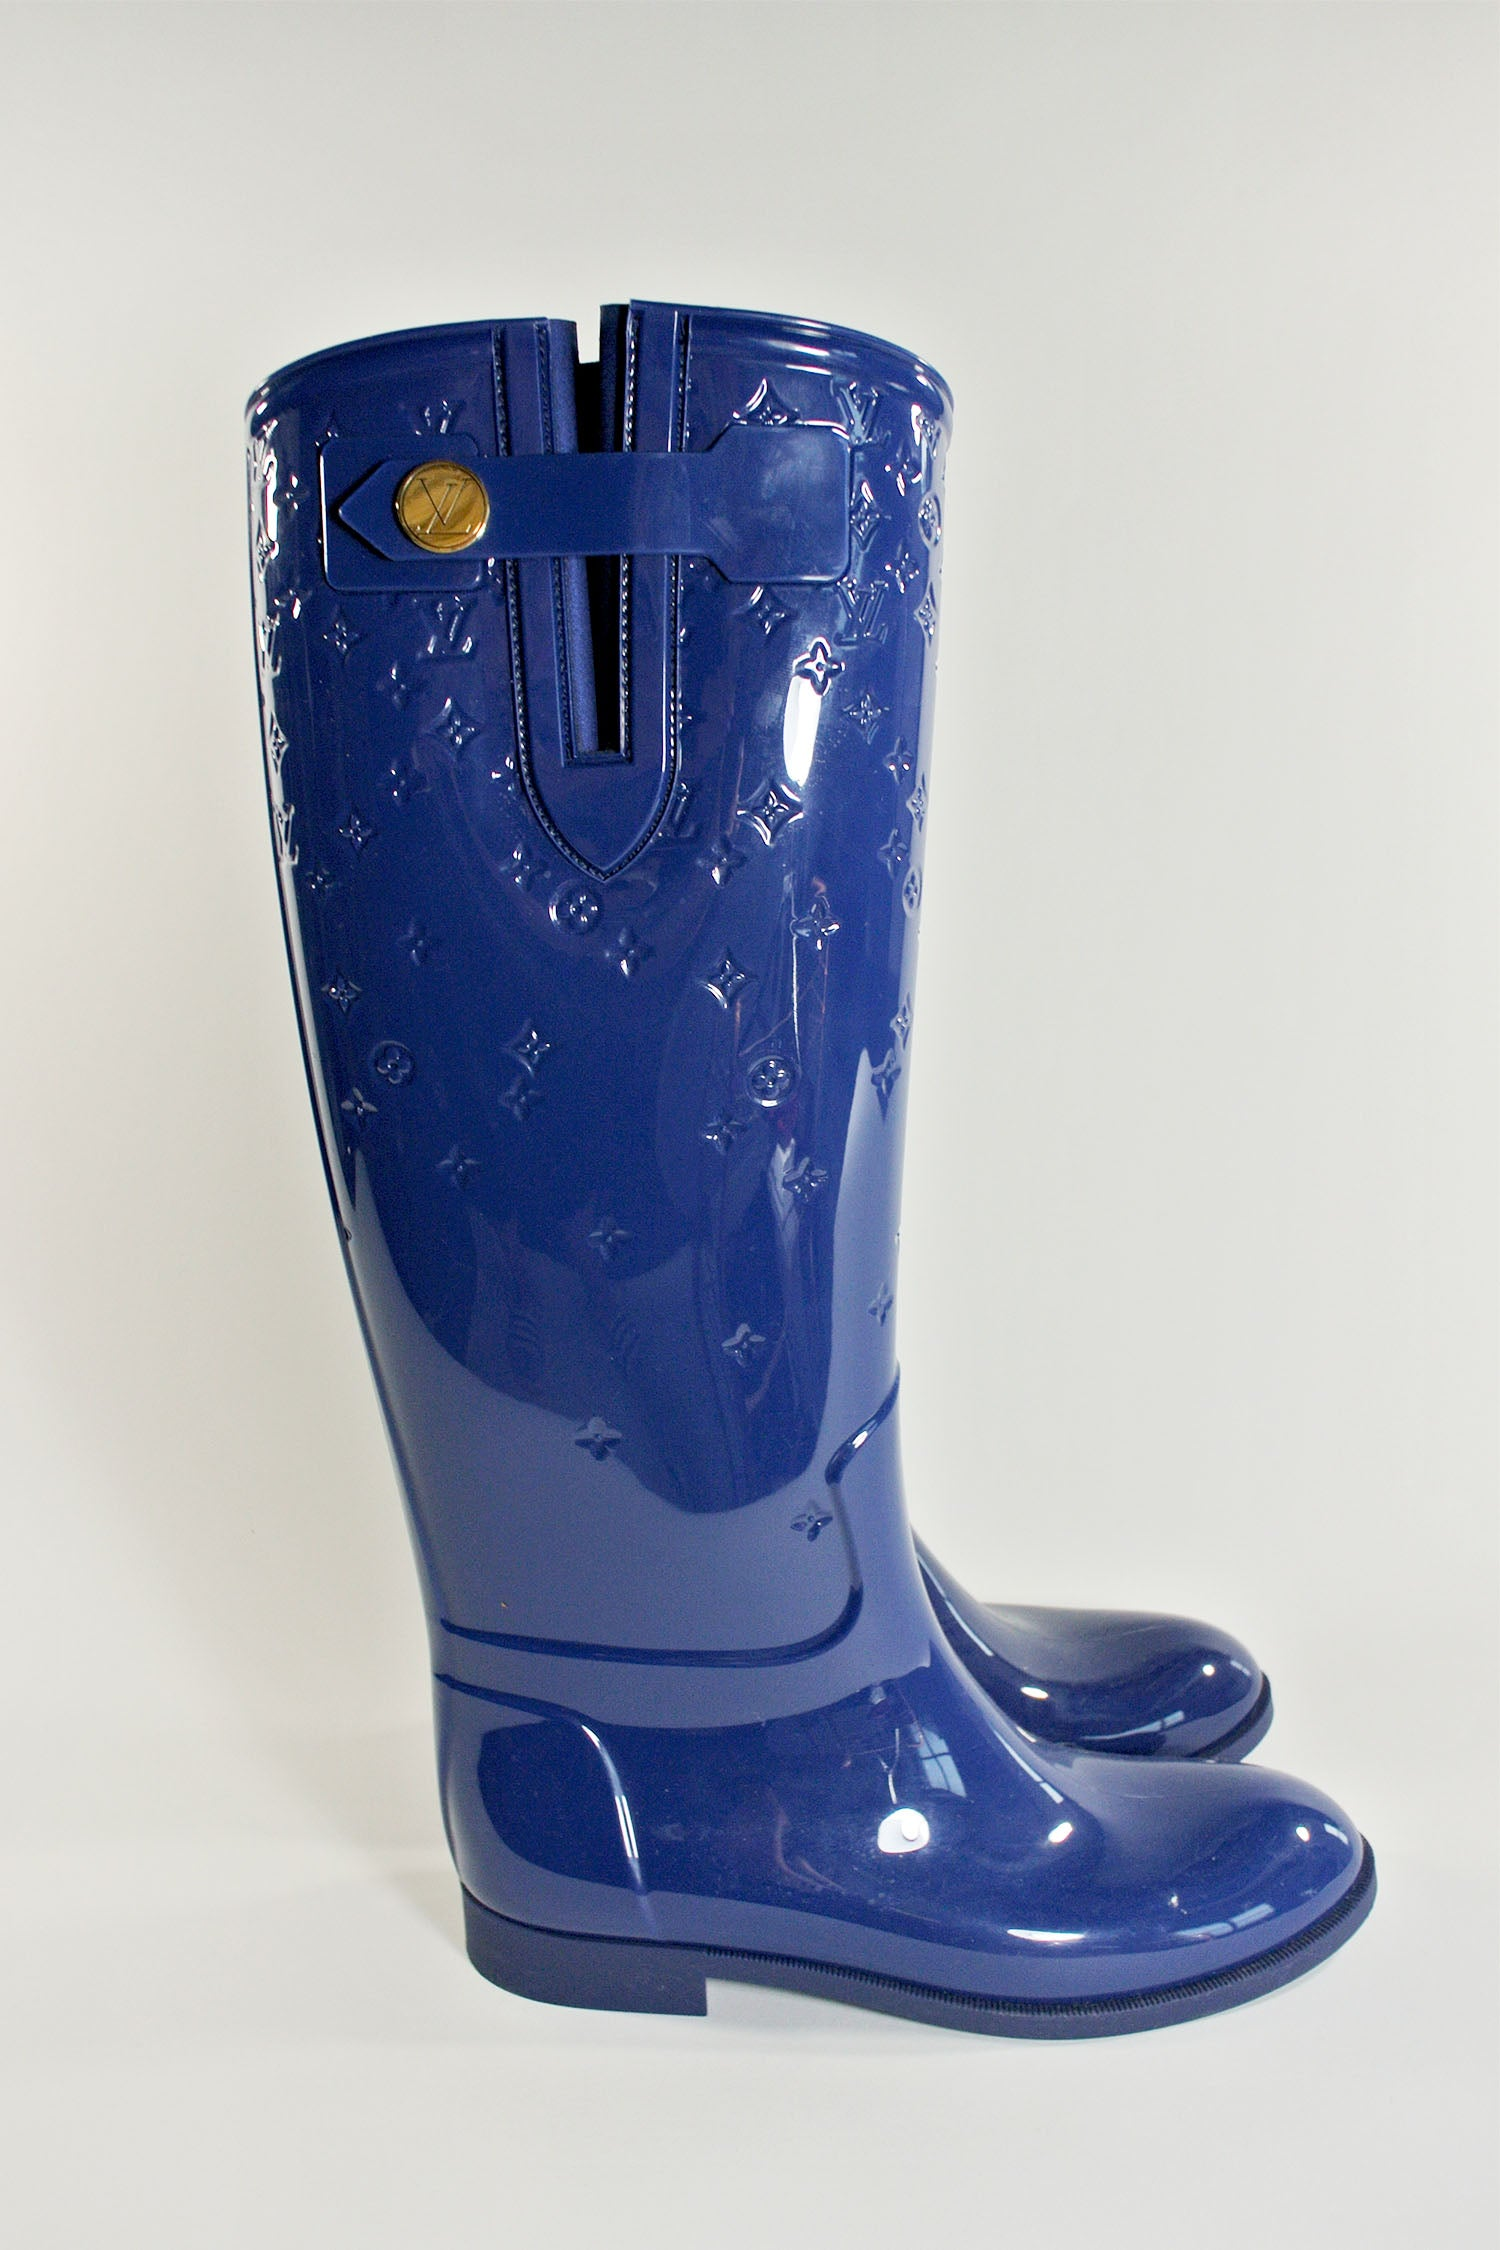 Louis Vuitton Monogram Rain Boot Sz 37